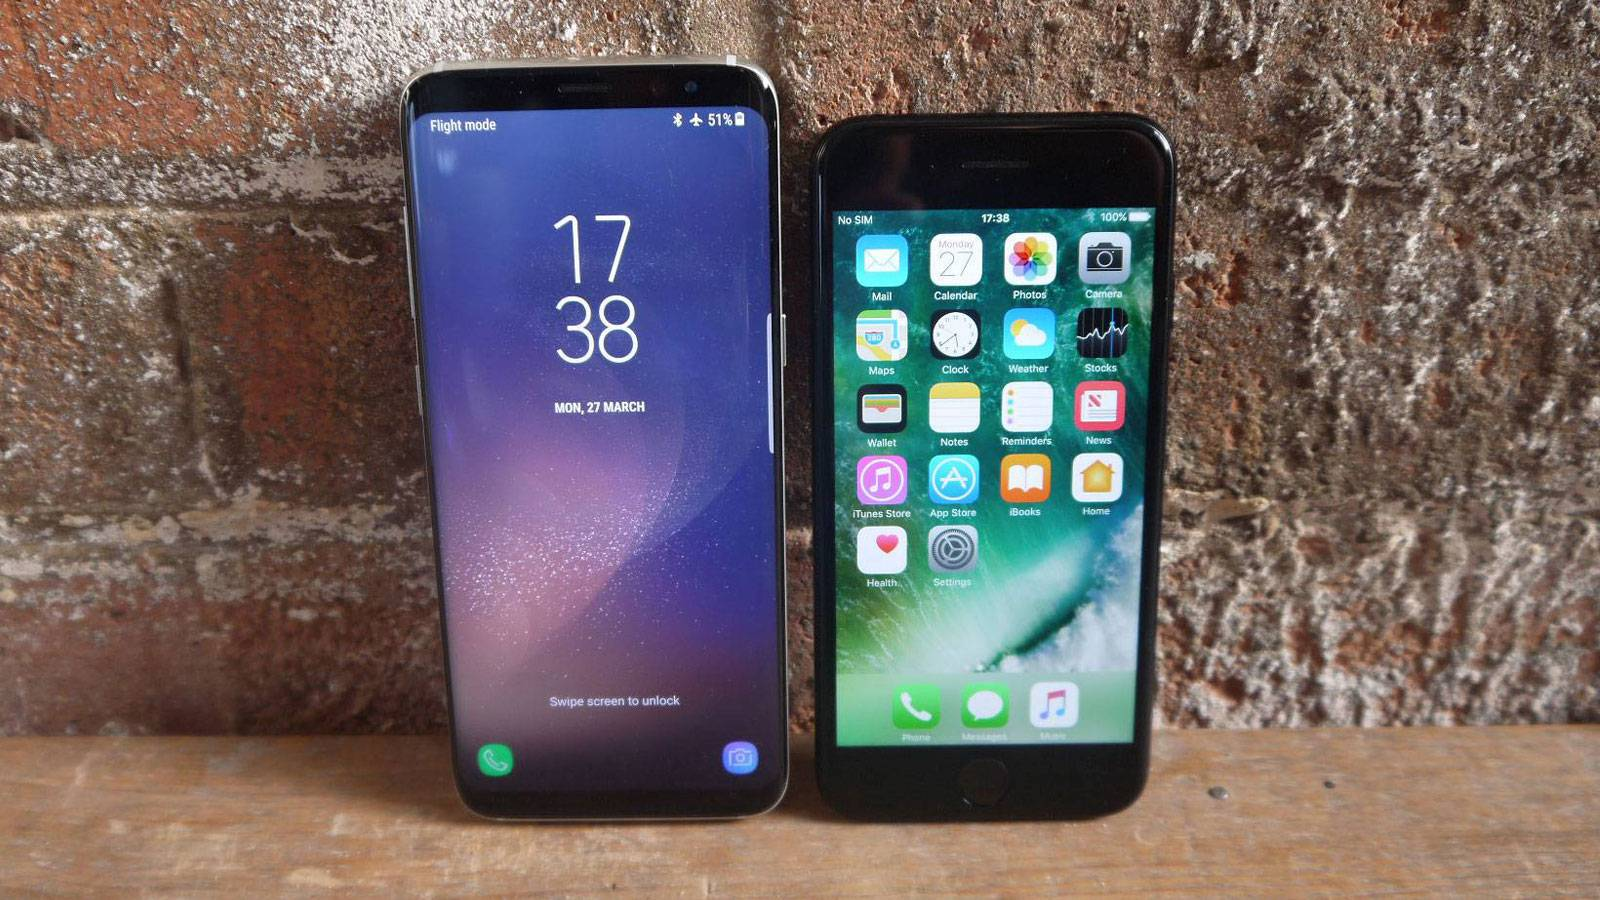 d6b54bd90520 Galaxy S8 is here: Should you still wait for iPhone 8? | TechRadar